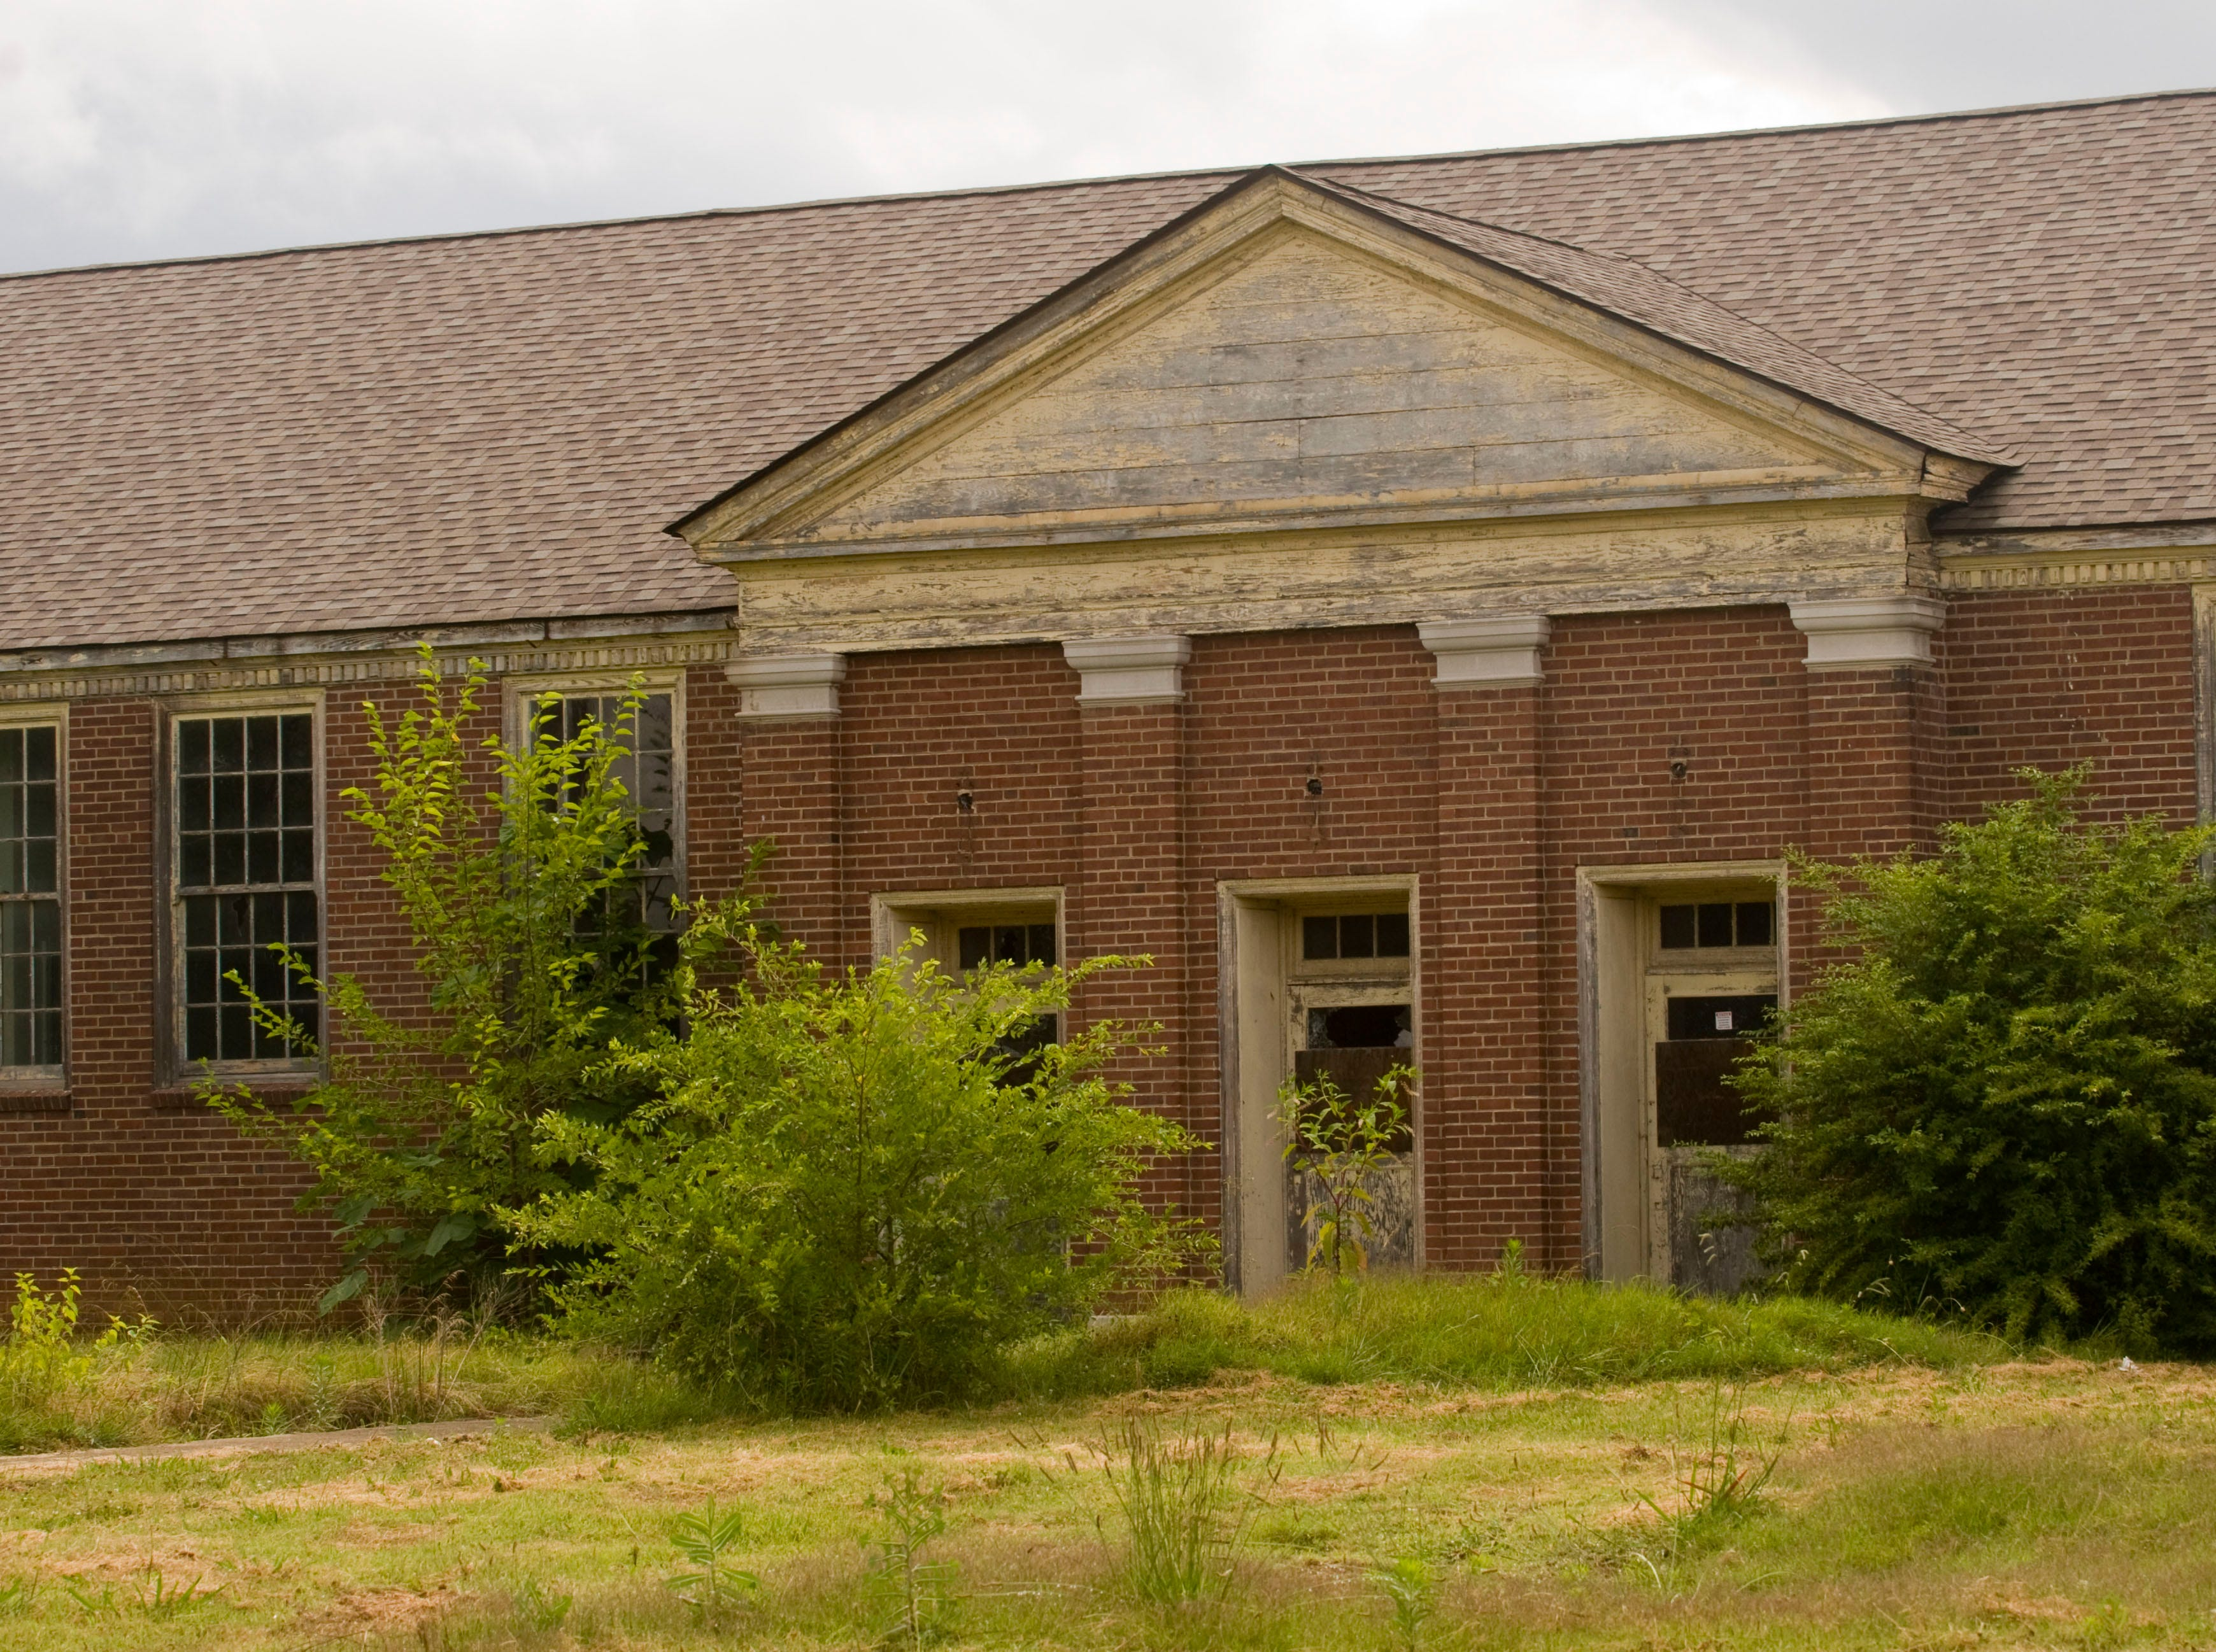 The city's list of blighted properties includes old South High School.